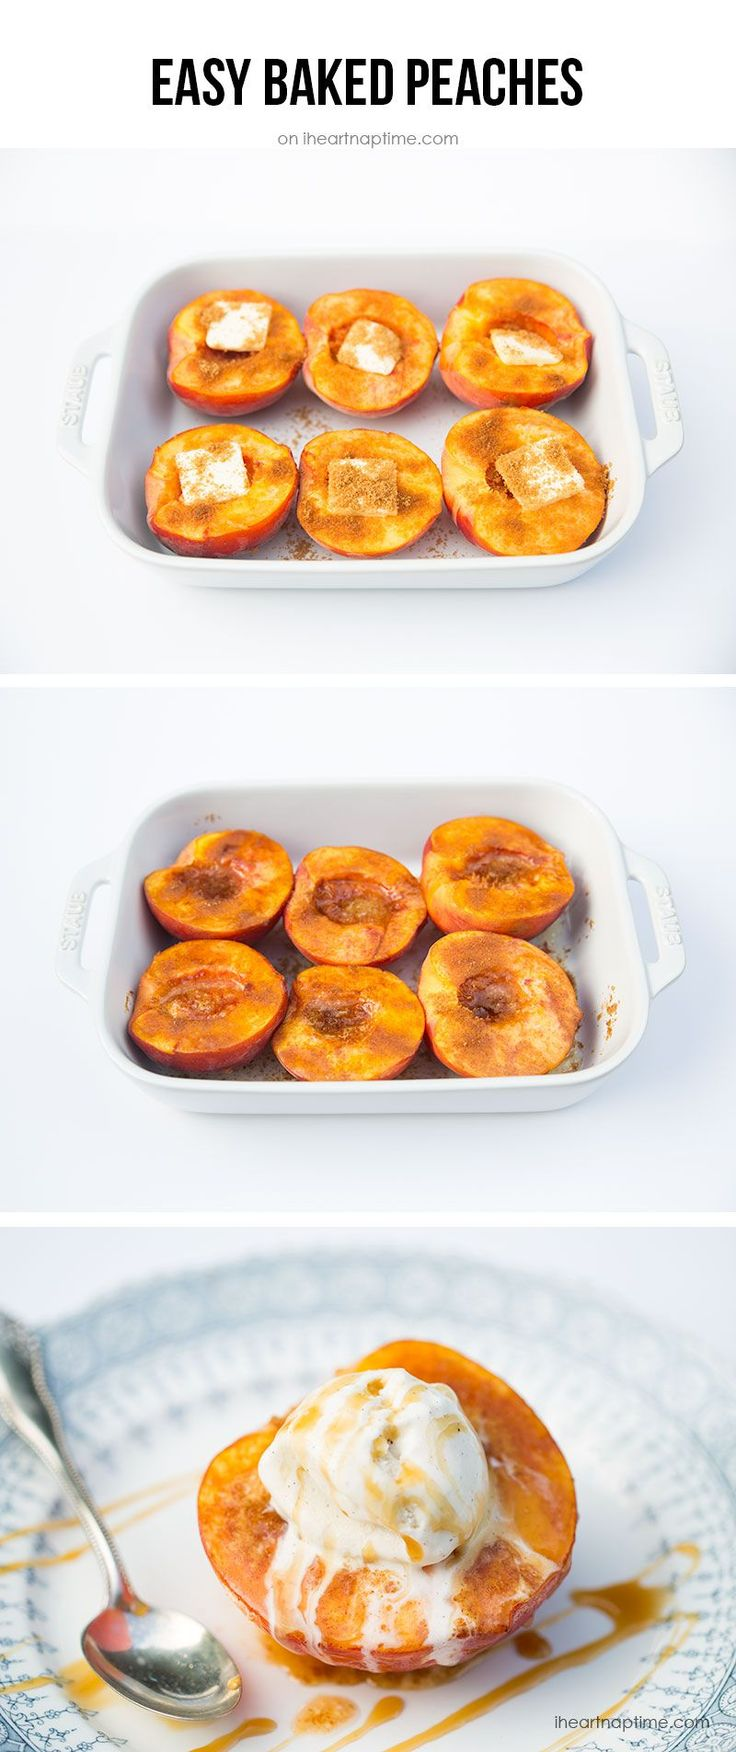 Baked Peaches by iheartnaptime: Made with brown sugar, butter and cinnamon this tastes like a homemade peach pie without all the work and calories. #Baked_Peaches #Easy